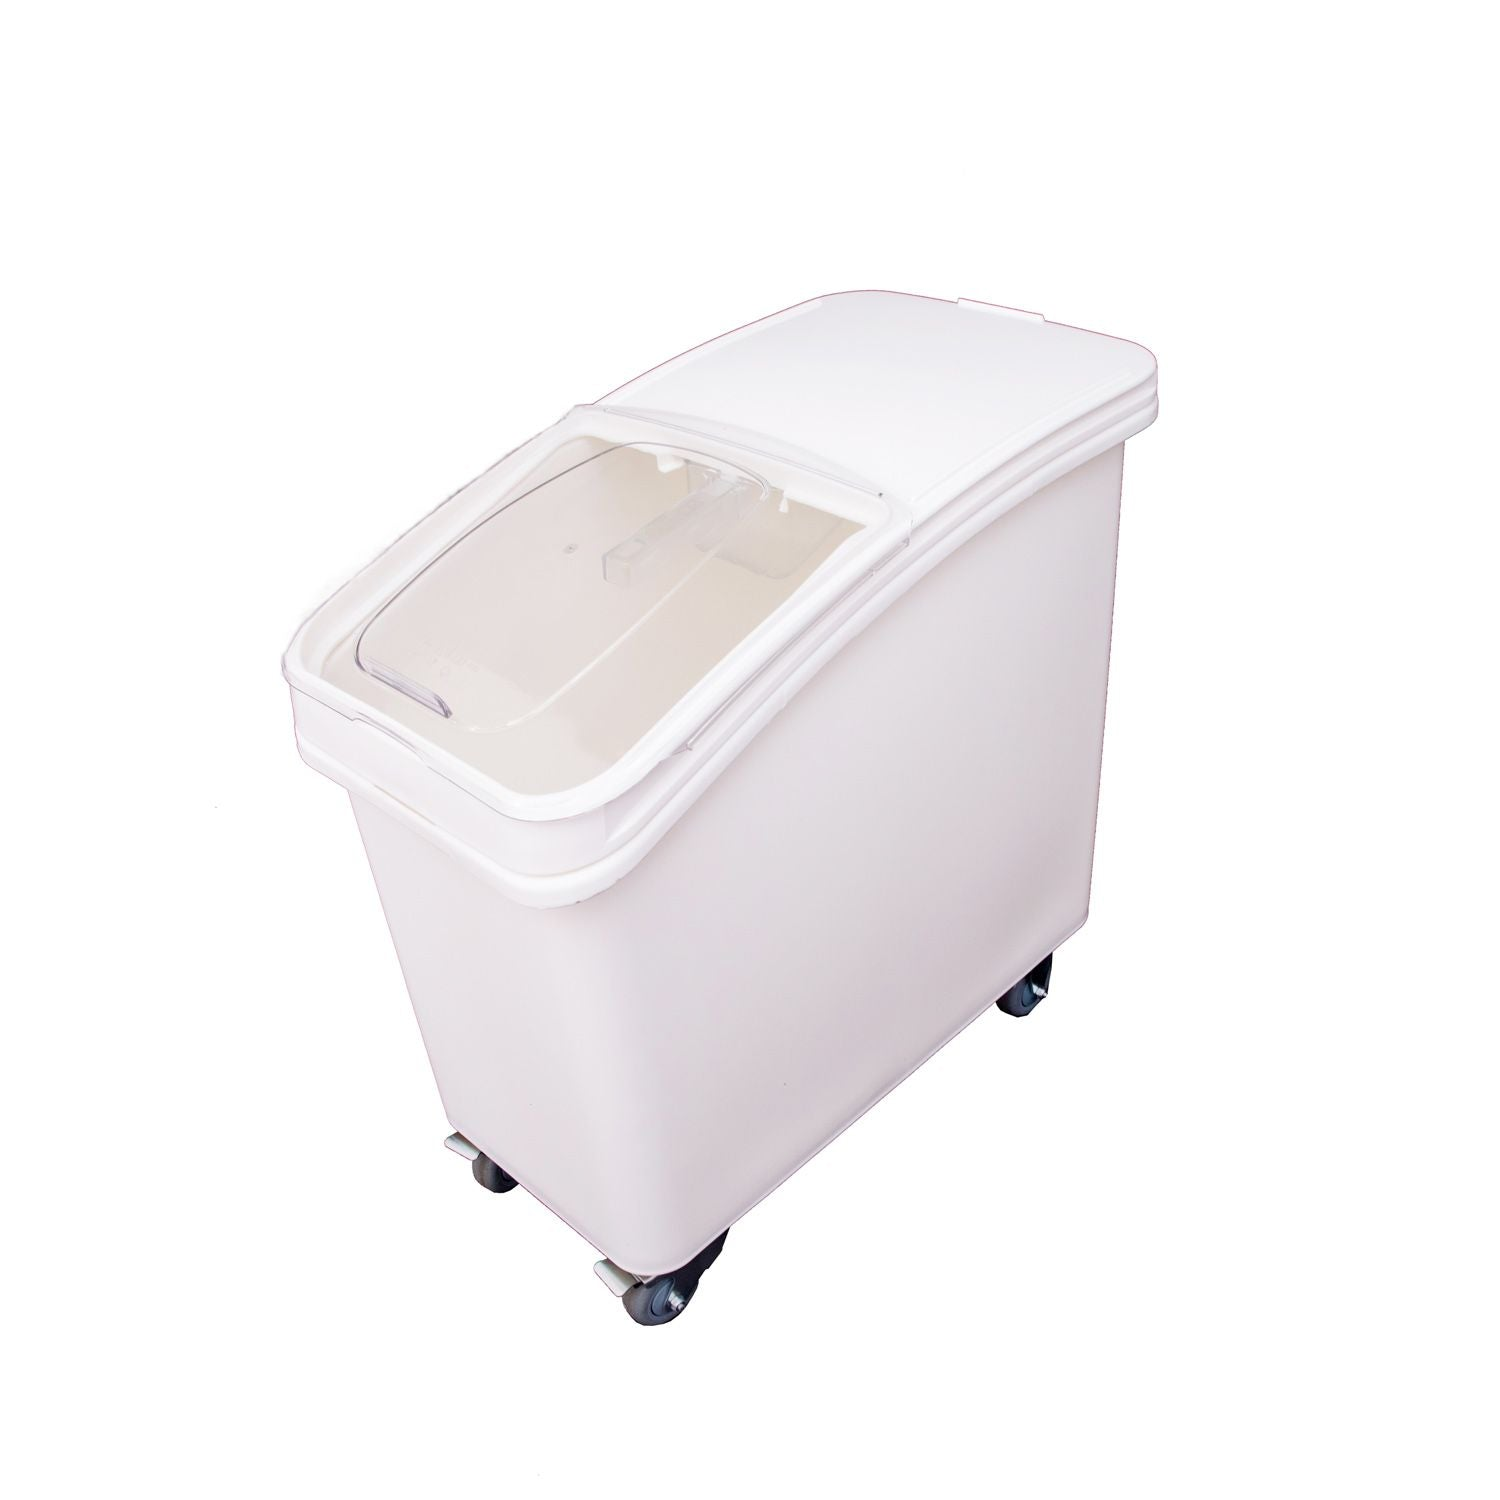 Ingredient Storage Bin Mobile 27 Gal, Plastic